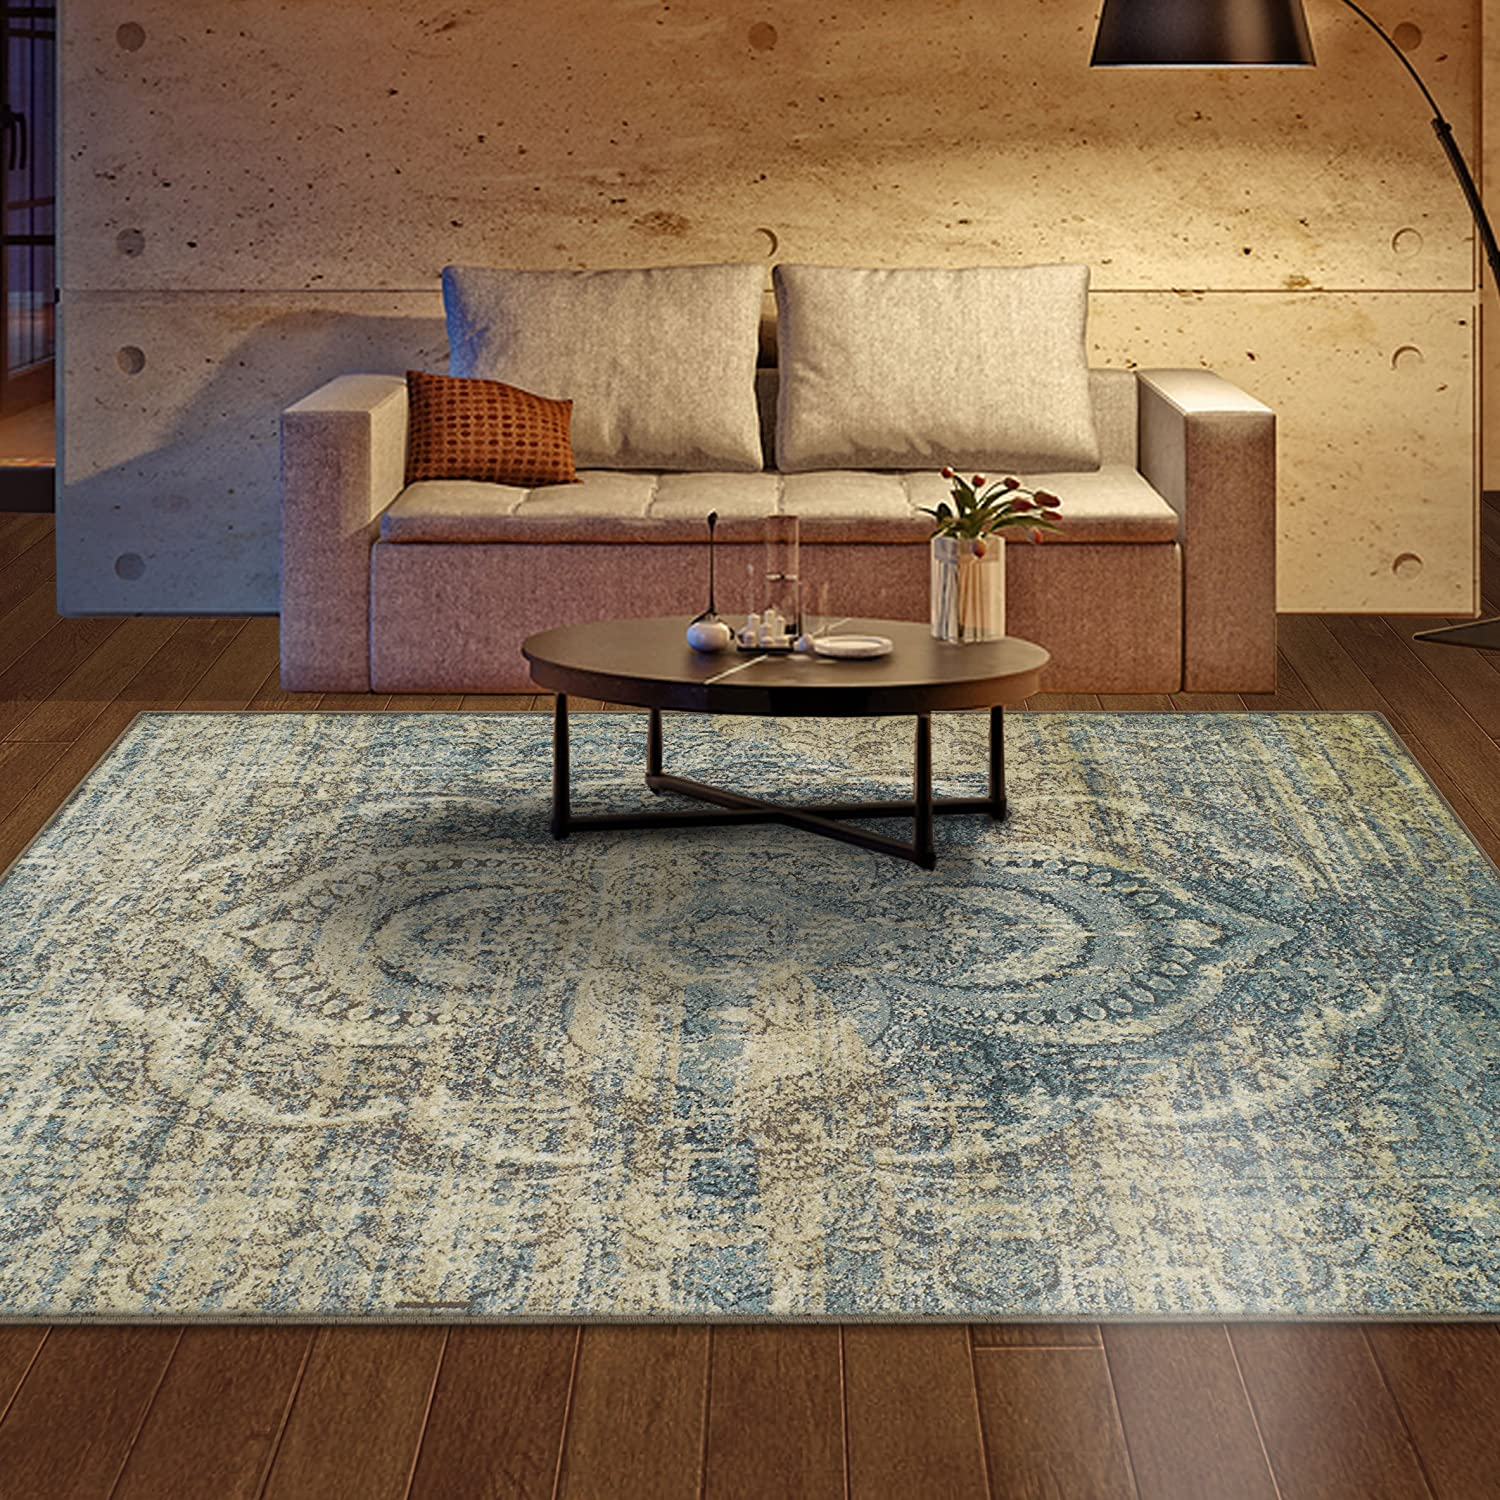 Superior Area Rug 2' x 3' 10mm Pile Height with Jute Backing, Woven Fashionable and Affordable Salford Collection, Blue-Beige 2X3RUG-SALFORD